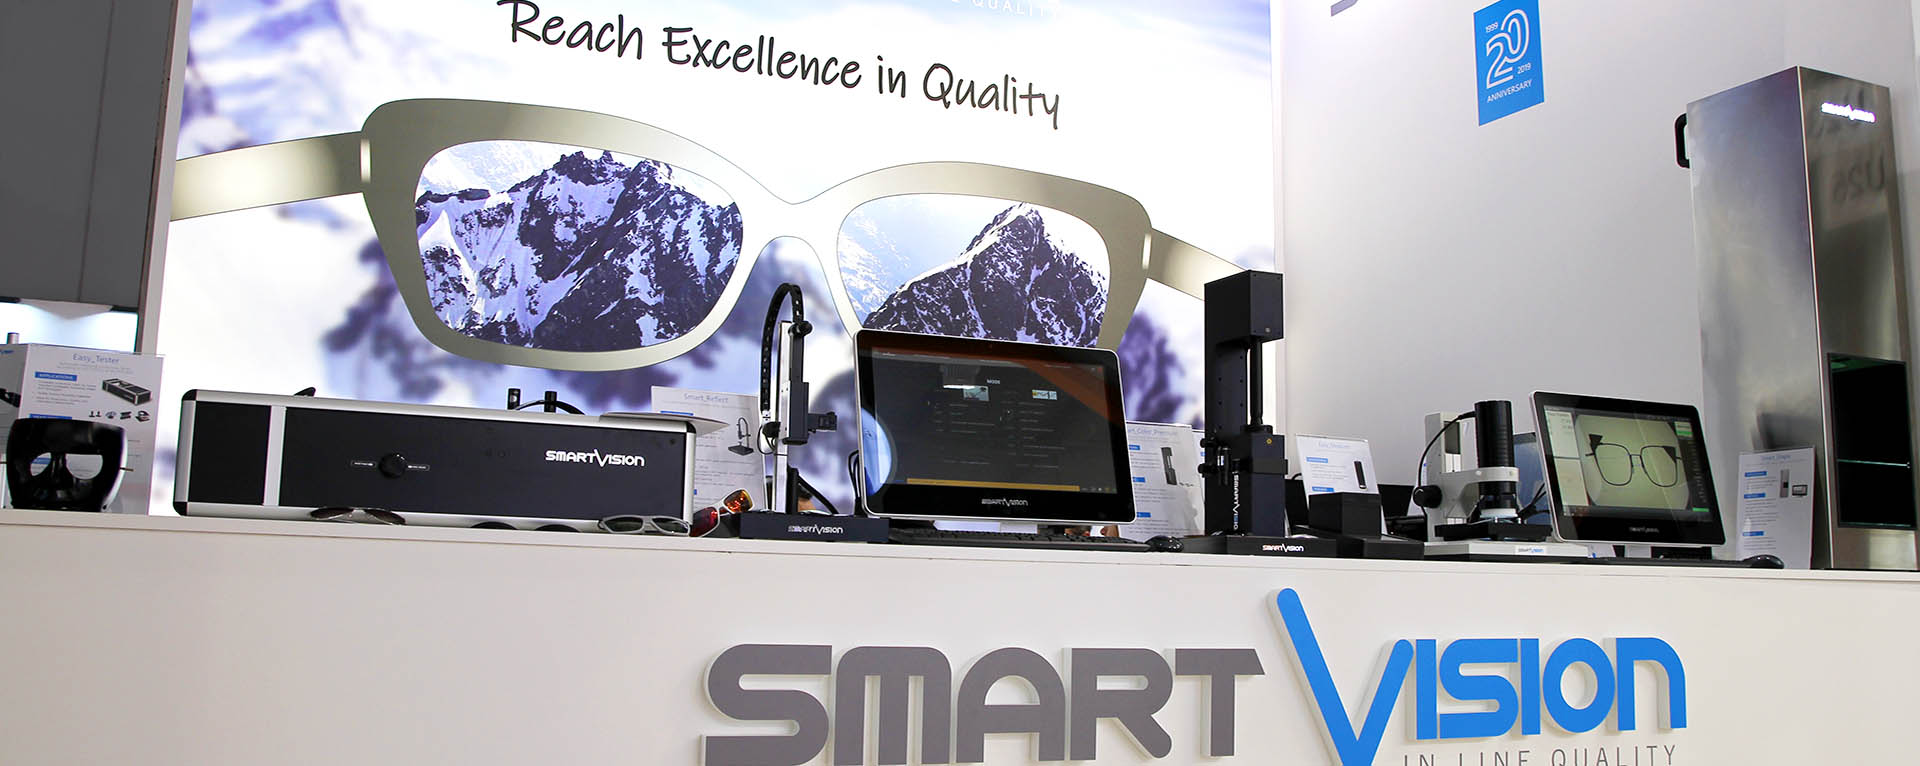 Reach the Excellence in Quality Control with SmartVision